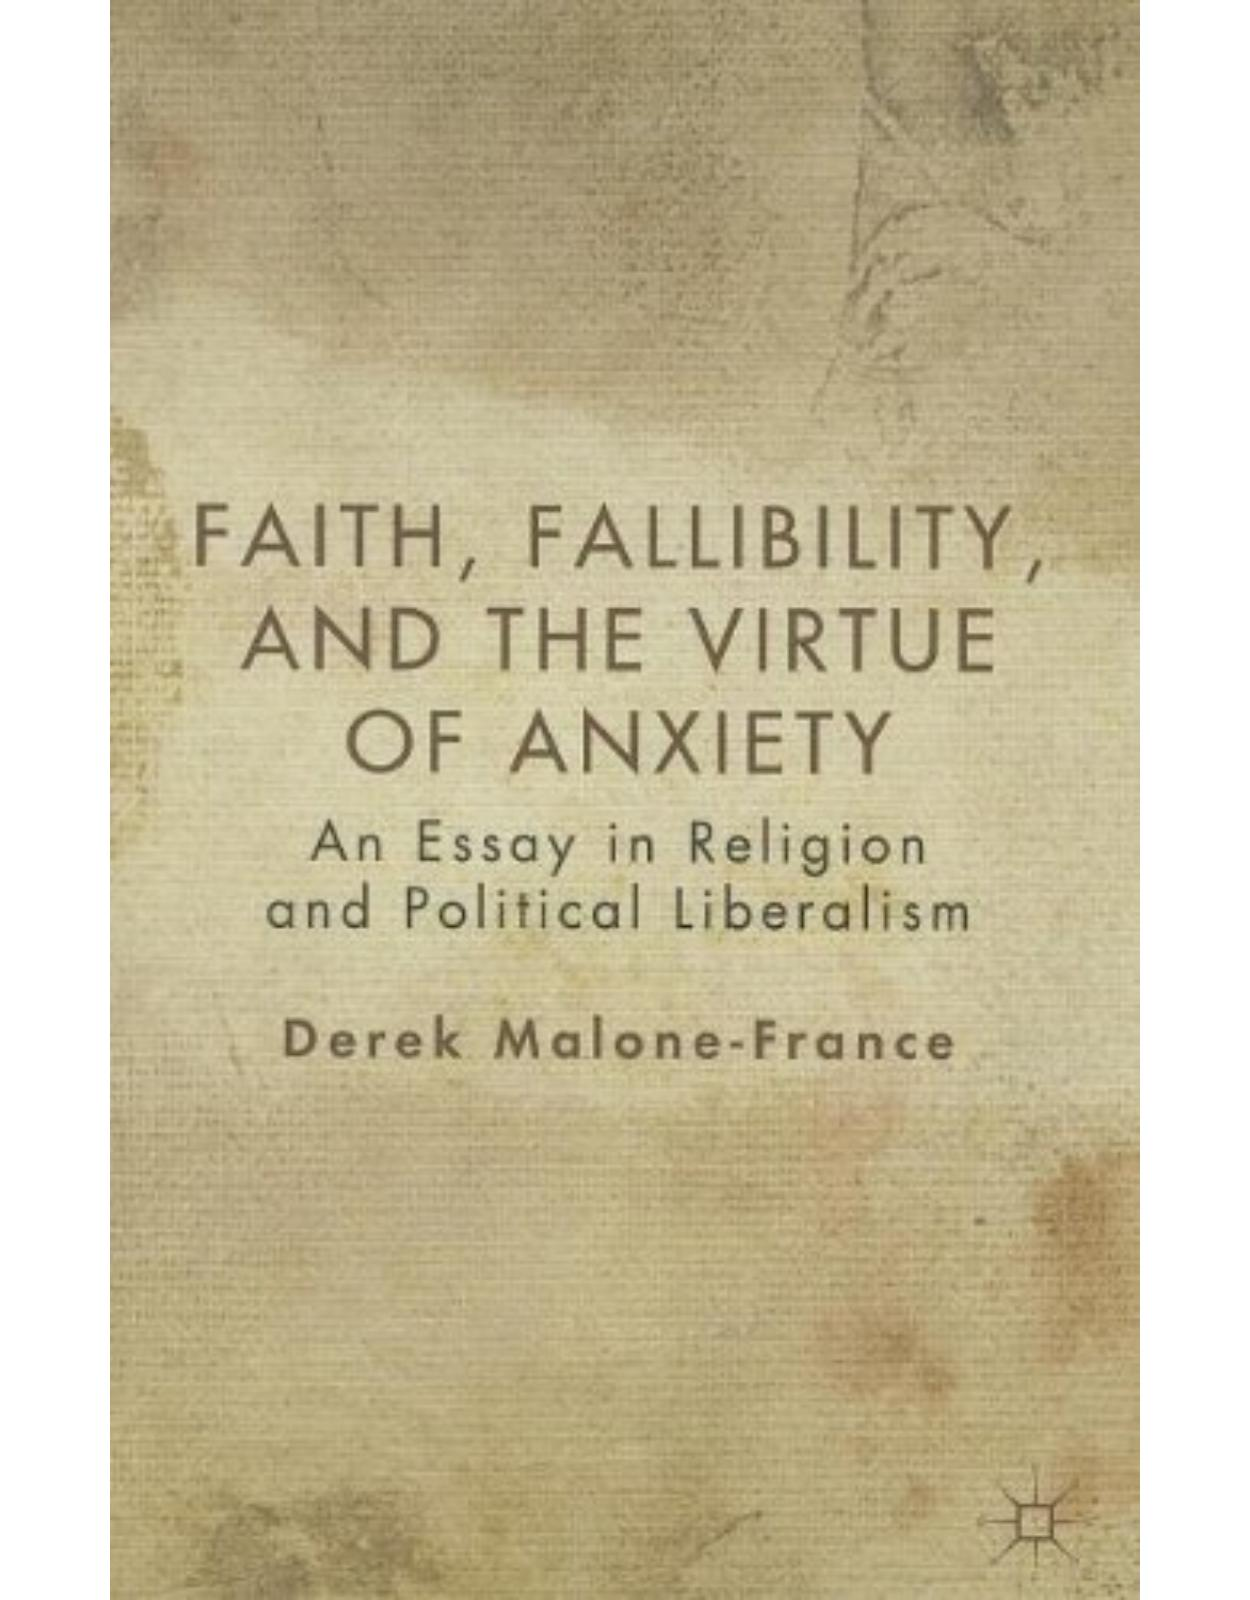 Faith, Fallibility, and the Virtue of Anxiety: An Essay in Religion and Political Liberalism